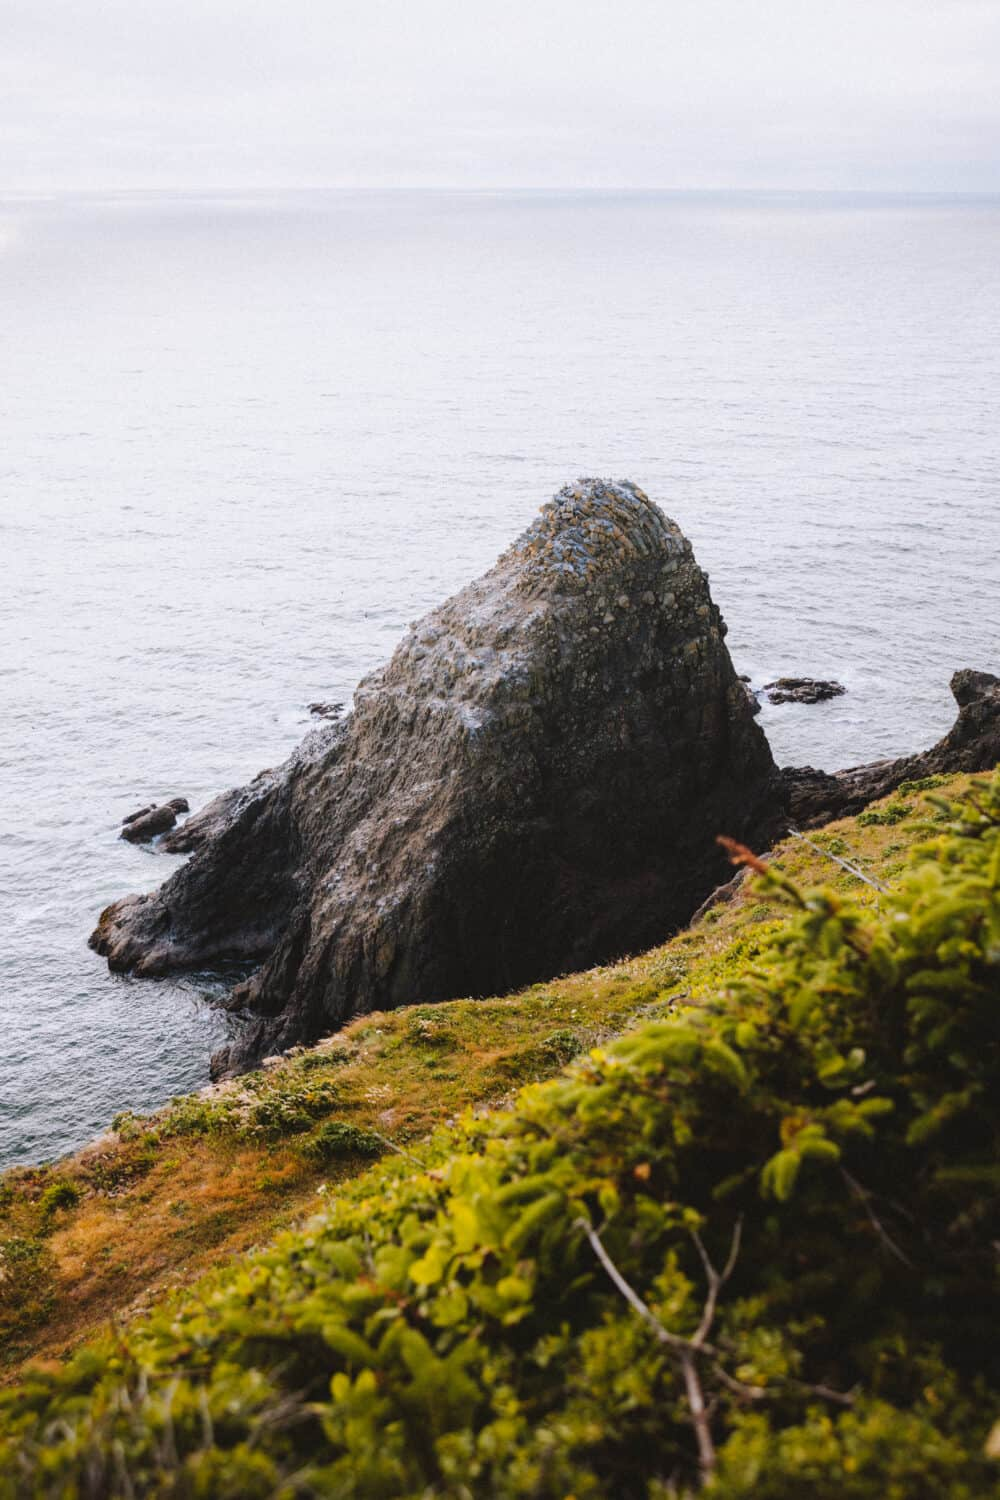 Looking for things to do around central Oregon? We're sharing 10 day trips from Eugene, Oregon, including Cape Perpetua, McKenzie River Corridor, Proxy Falls, Heceta Head Lighthouse and more! #oregon #Eugene #capeperpetua # #proxyfalls #pacificnorthwest #PNW #cascades #photography #sunrise #lighthouse #oregoncoast